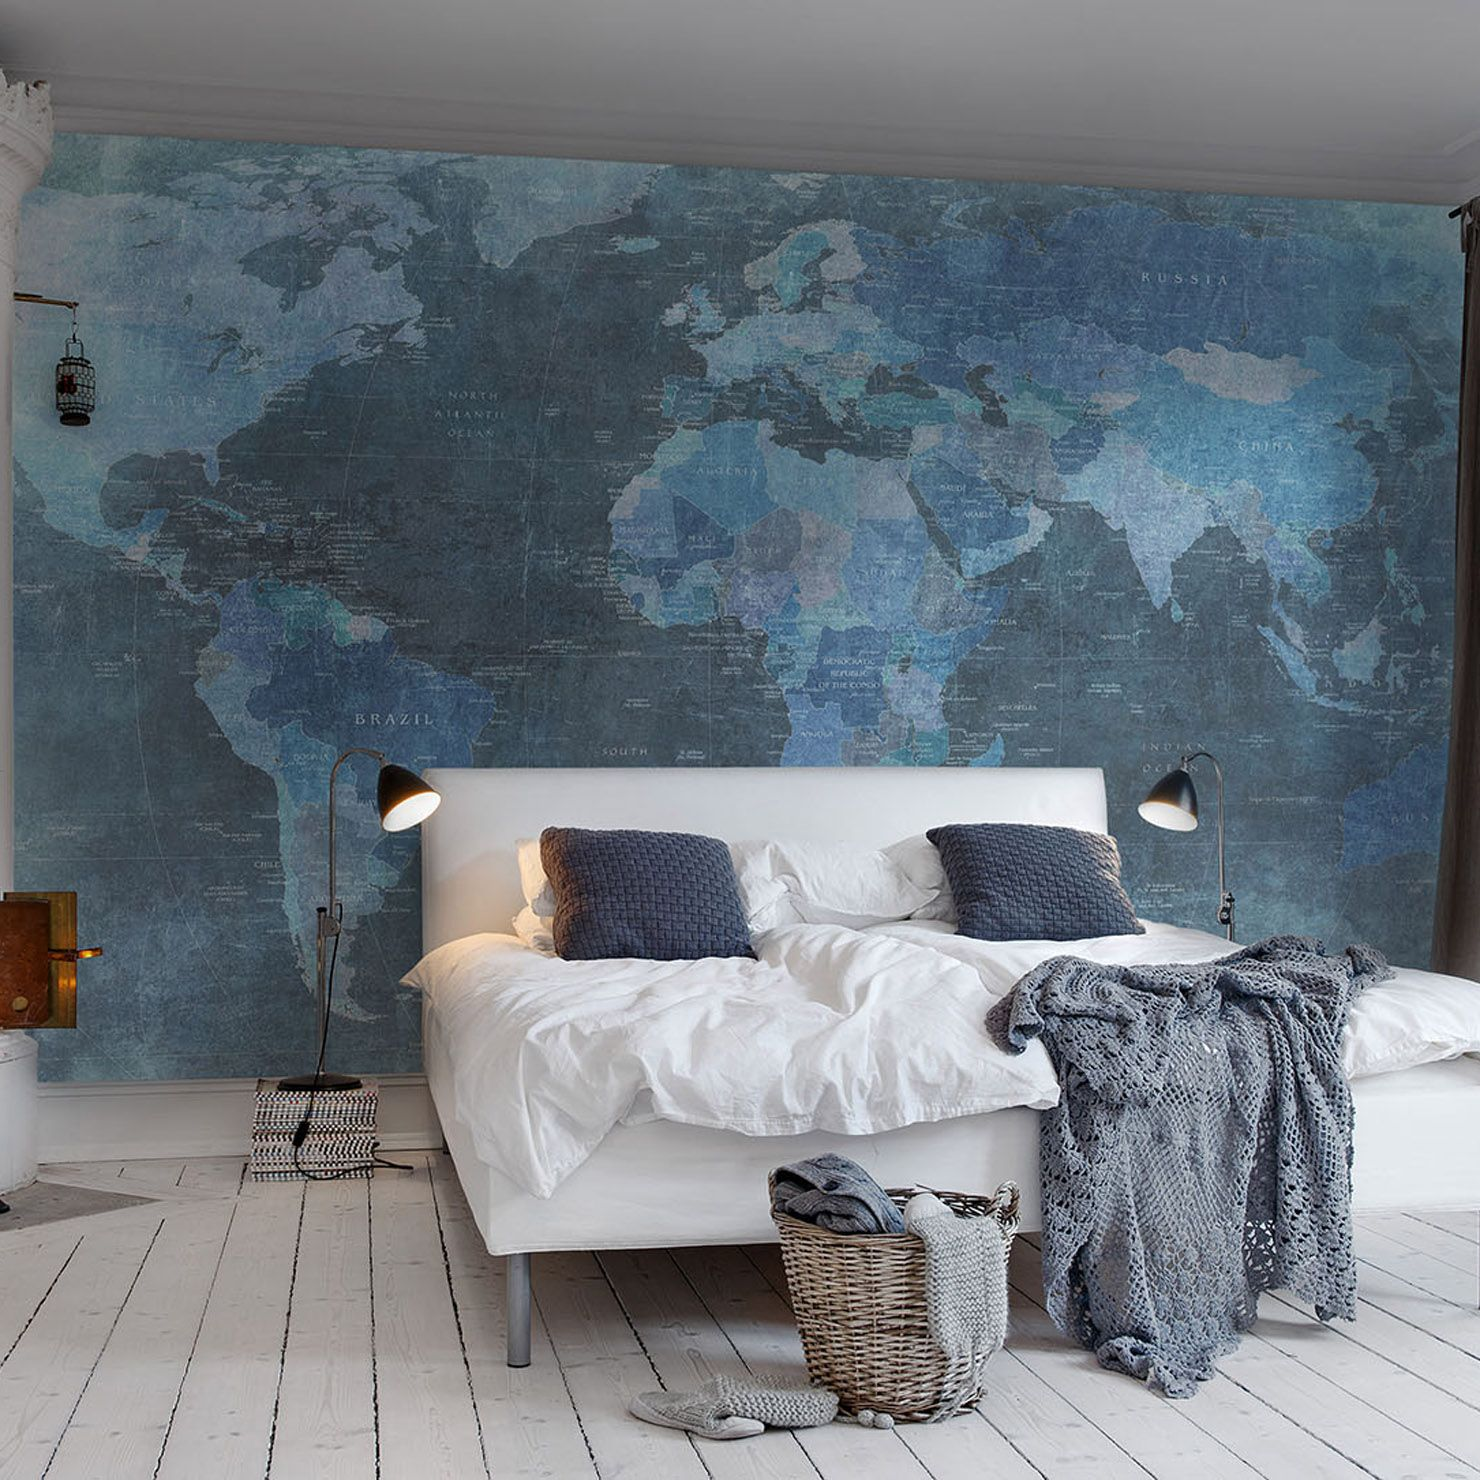 Fates de beaux rves planisphre world map wall deco room fates de beaux rves planisphre world map wall world map wallpaperboys bedroom gumiabroncs